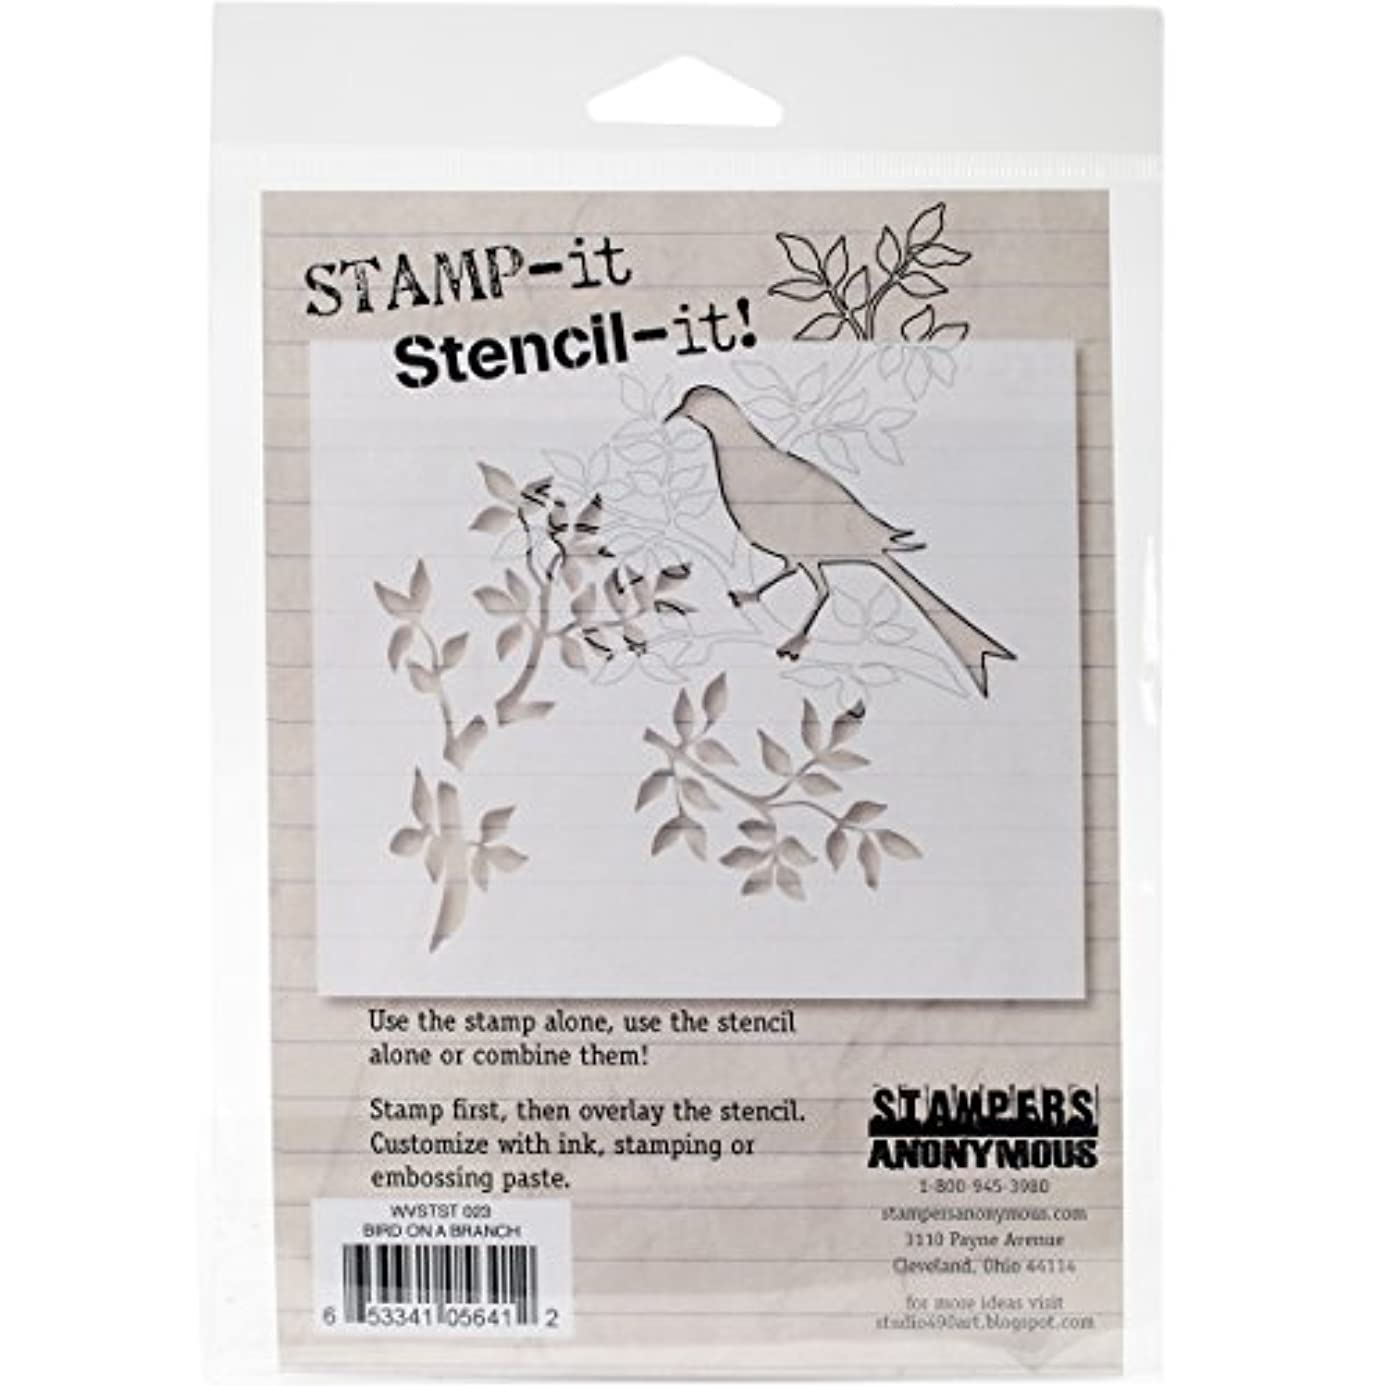 Stampers Anonymous Studio 490 Stamp It Stencil It 7